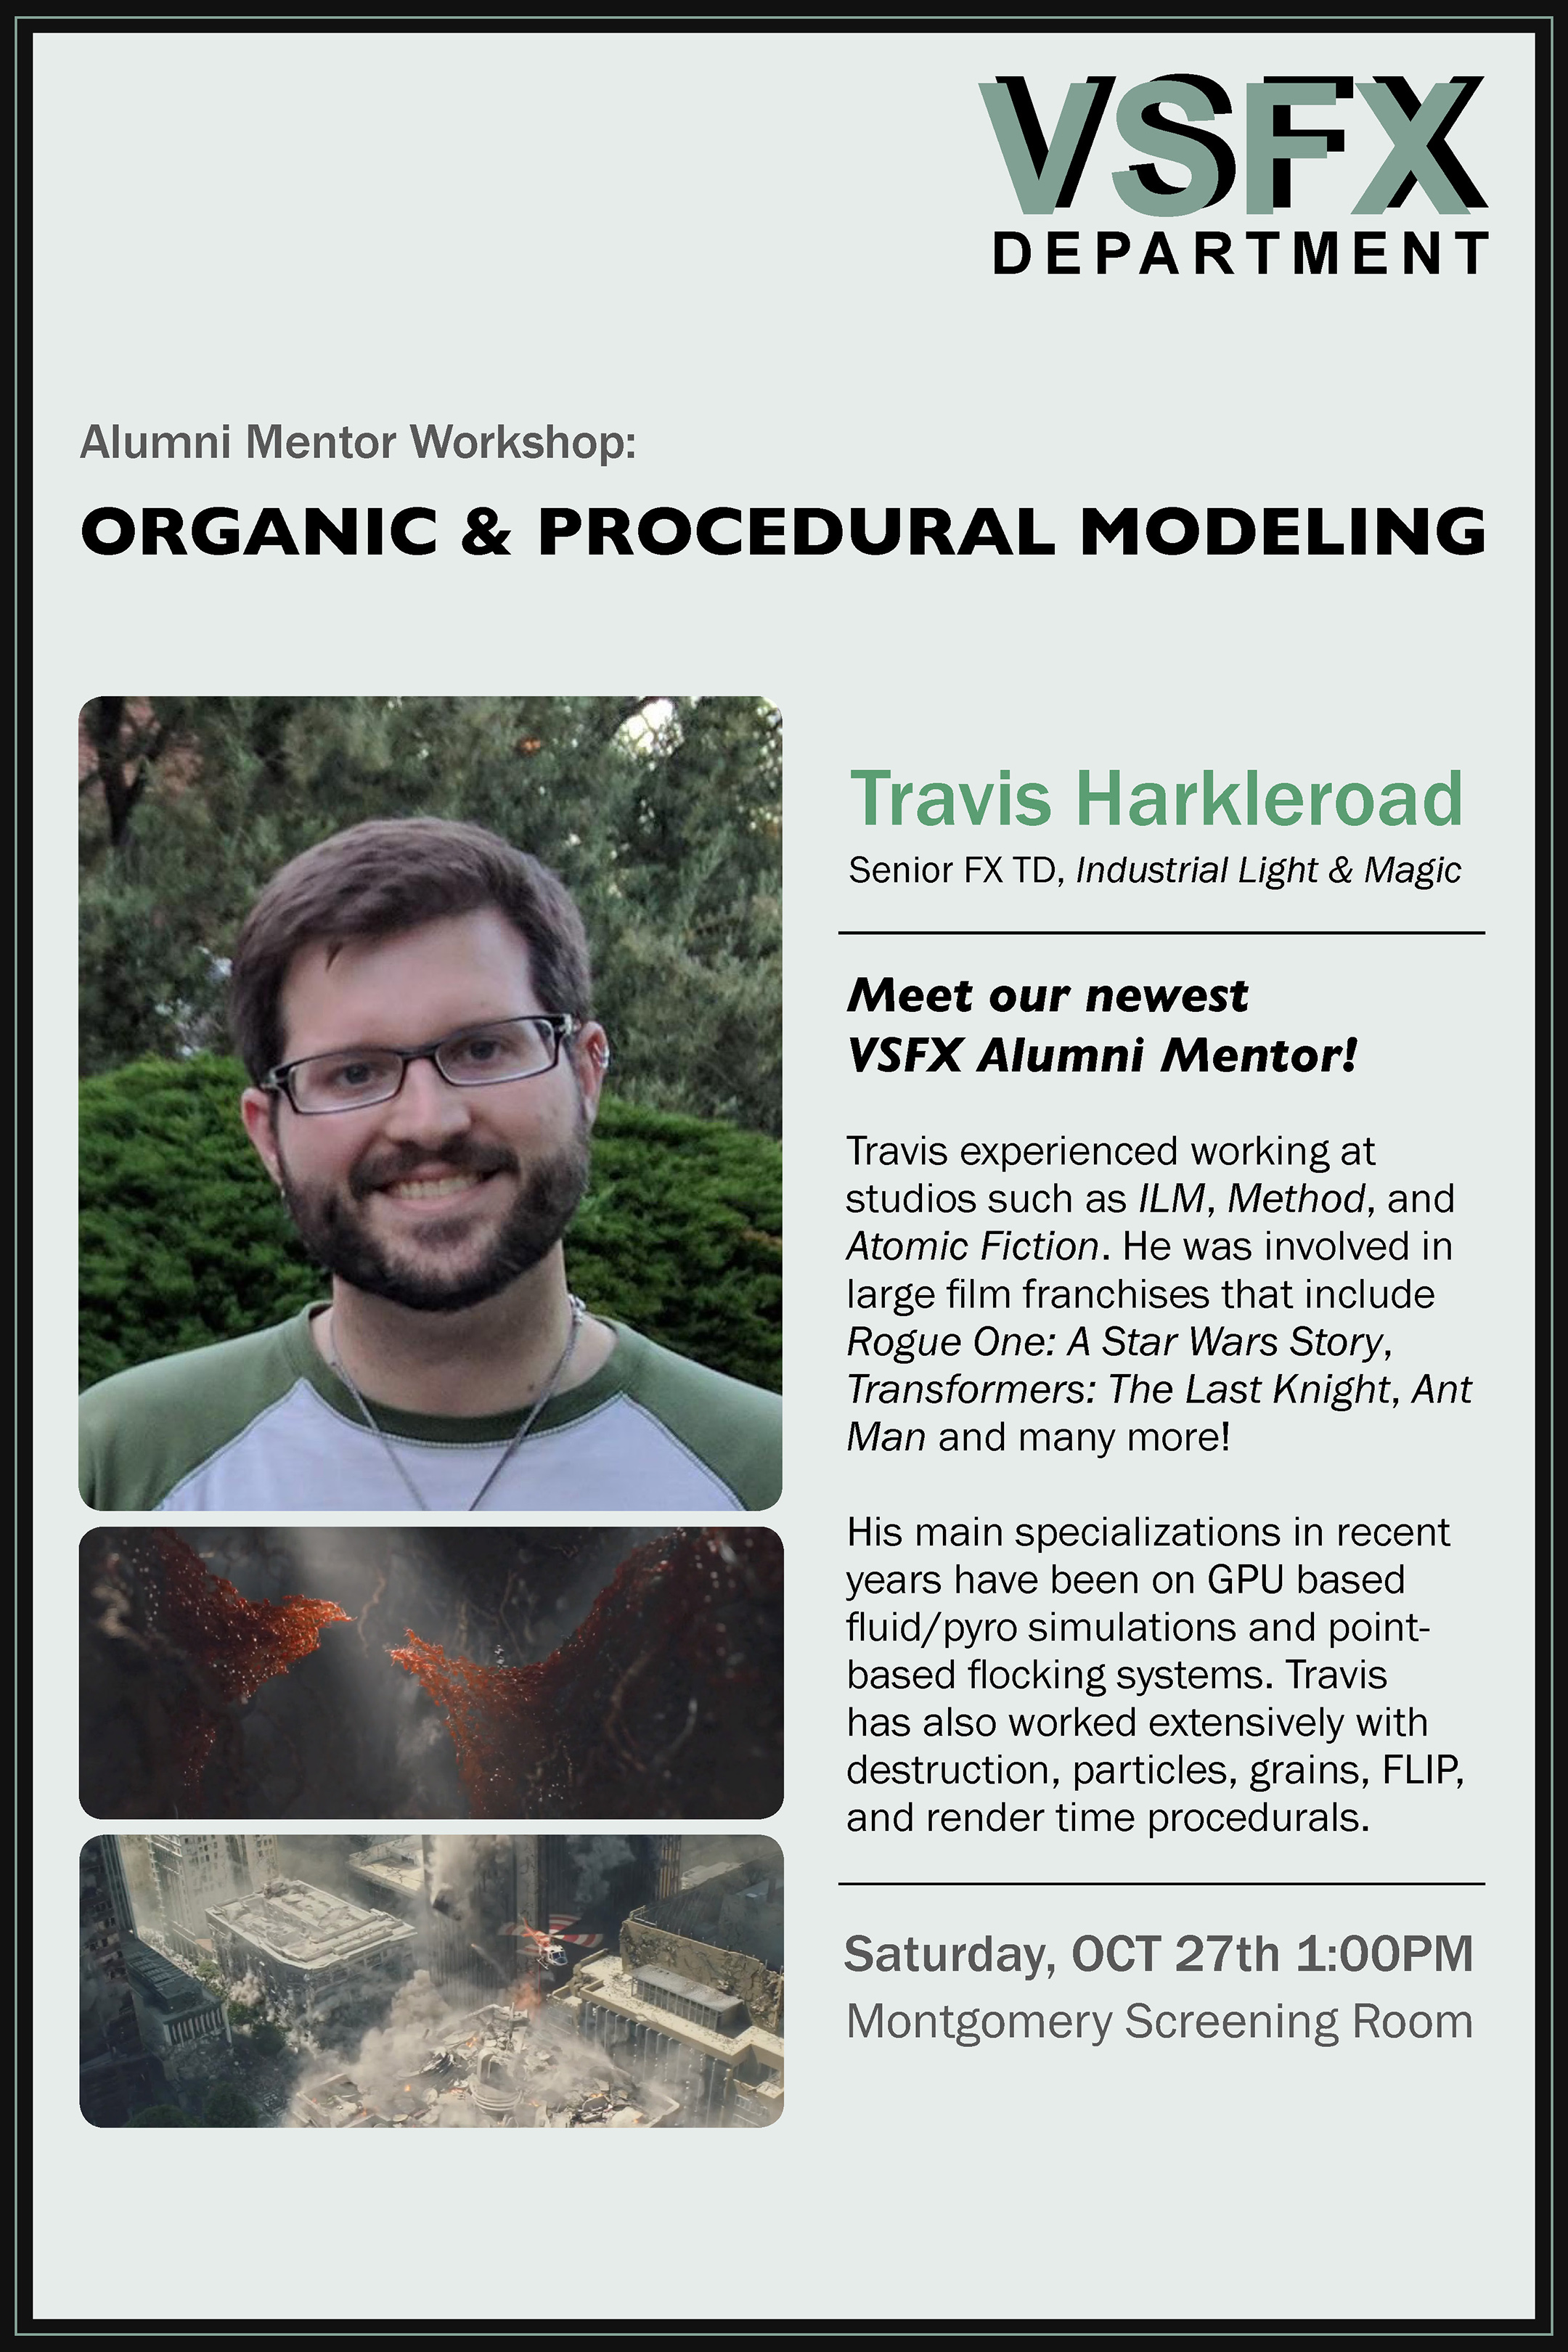 VSFX  Alumni Mentor Workshop: Organic and Procedural Modeling with Travis Harkleroad